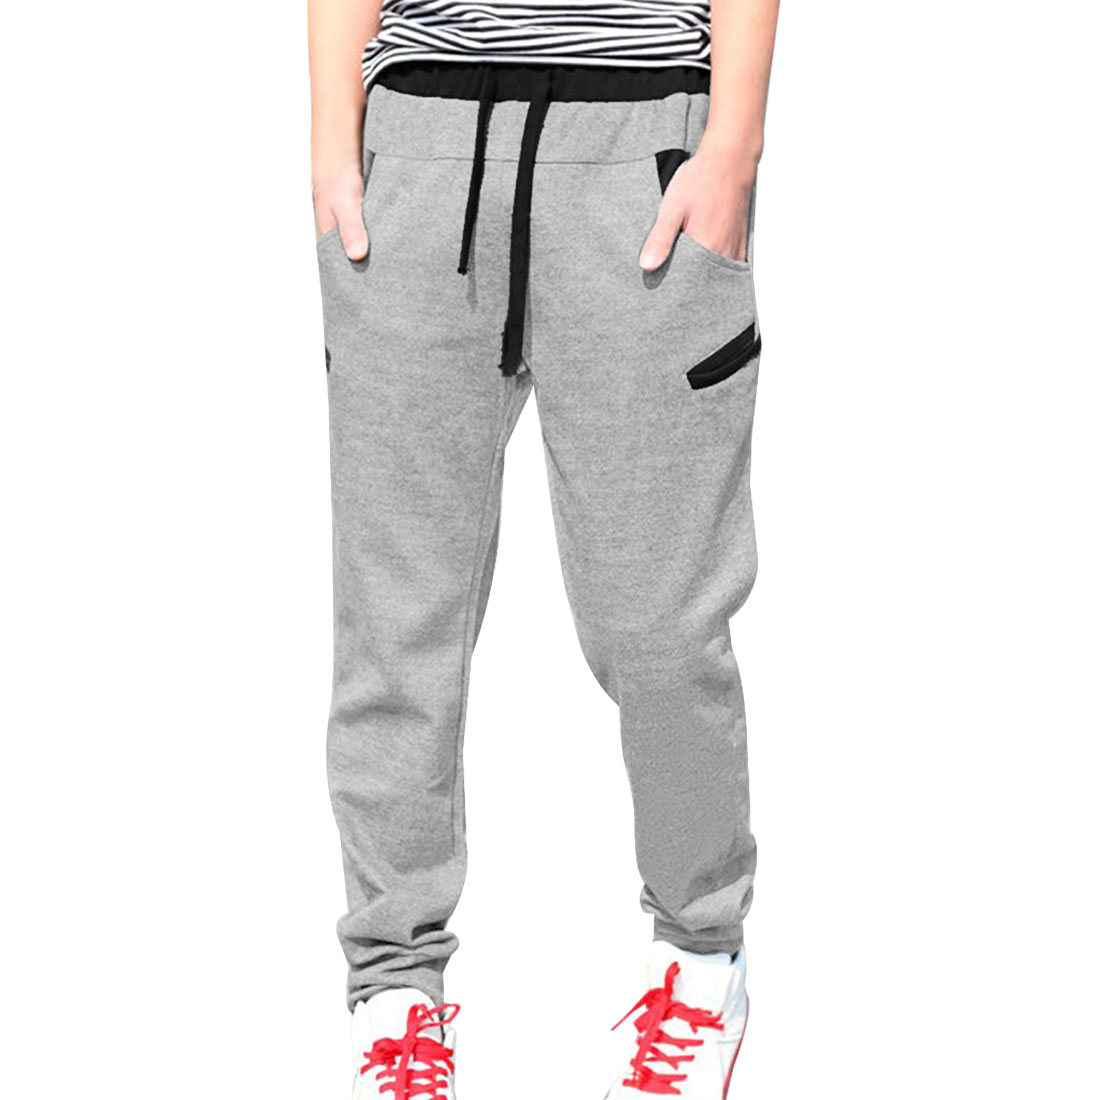 Azzuro Men's Drawstring Sweatpants with Conrast Detail Gray (Size S / W30)